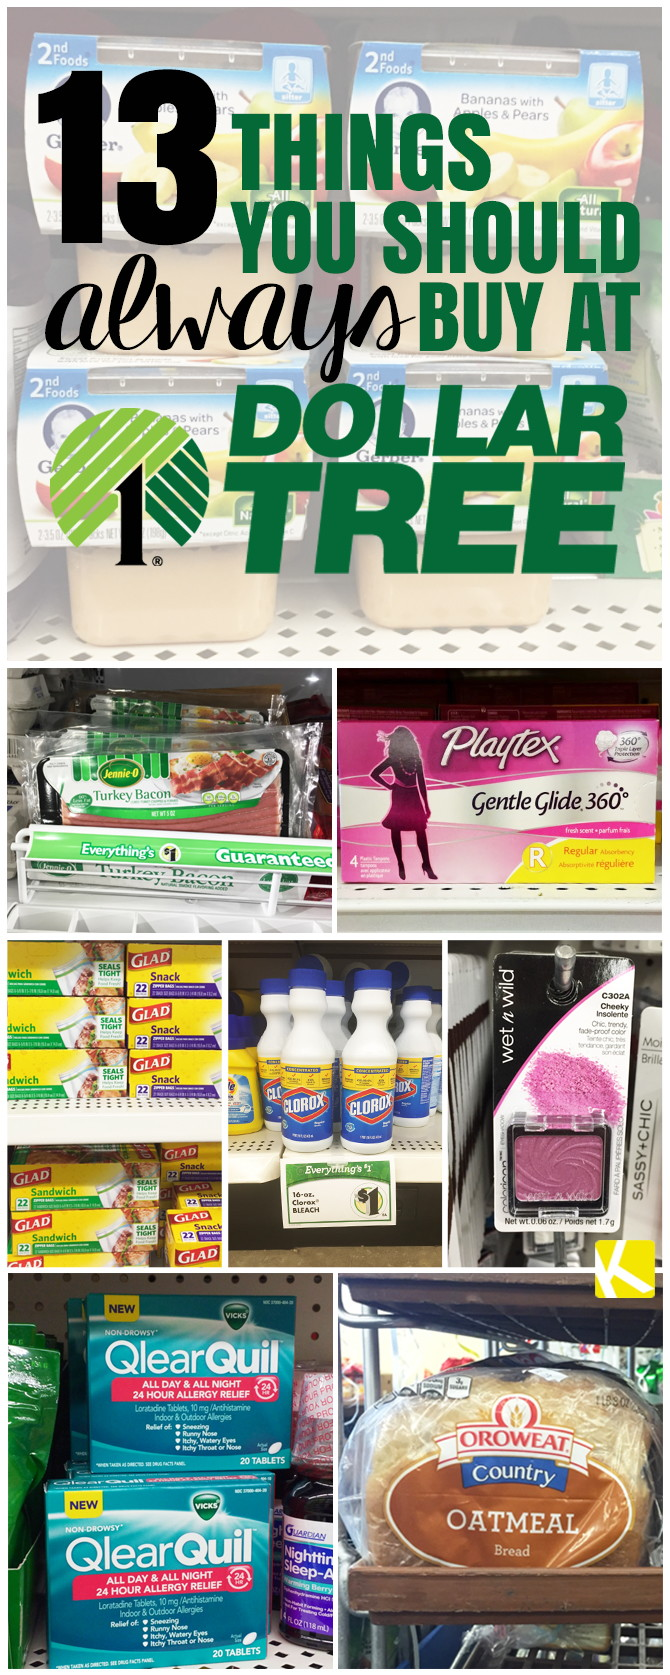 13 Things You Should Always Buy at Dollar Tree - The Krazy